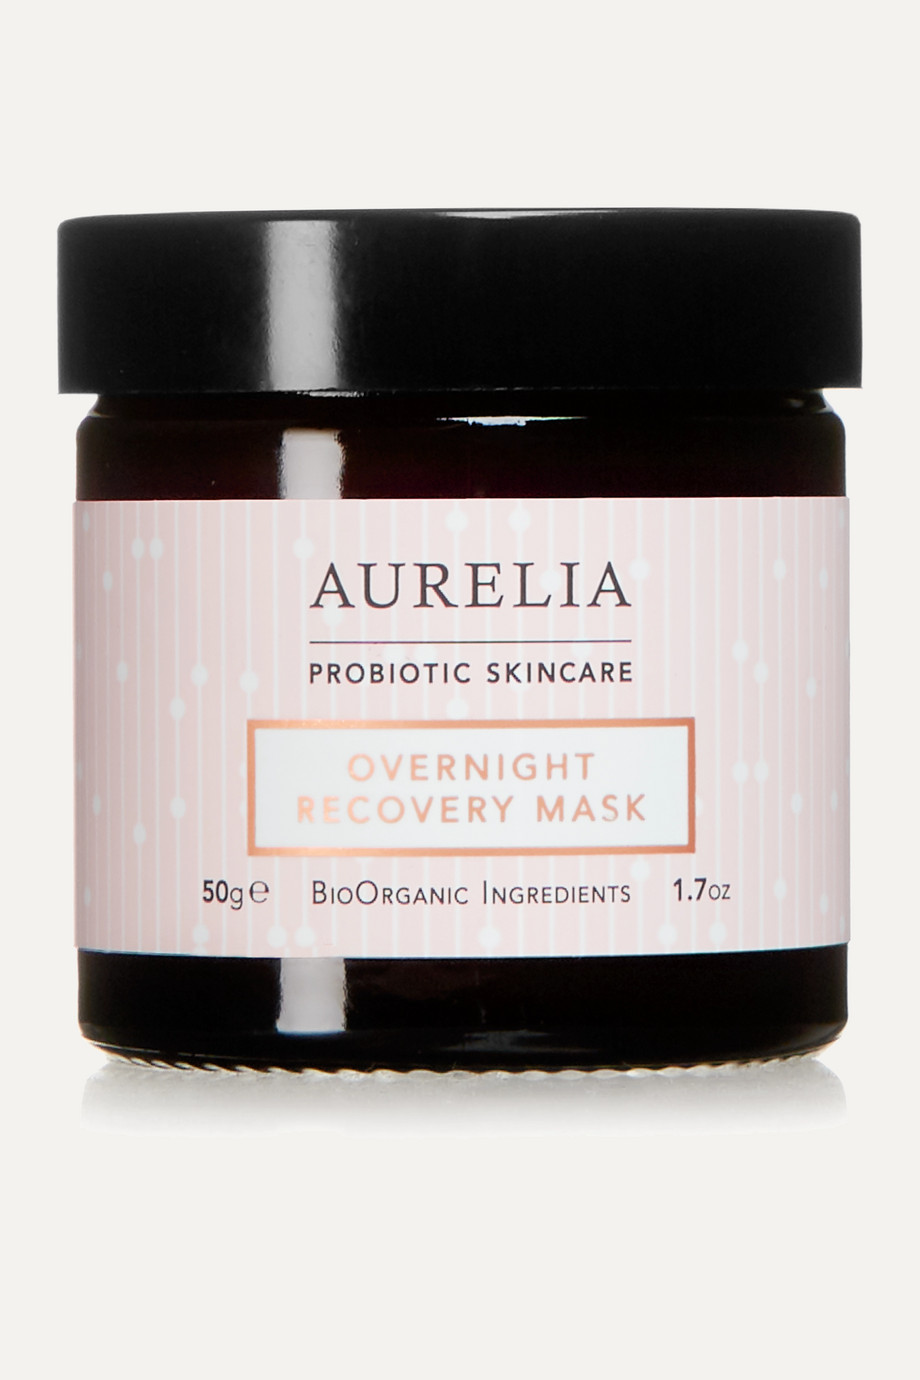 Aurelia Probiotic Skincare + NET SUSTAIN Overnight Recovery Mask, 50g